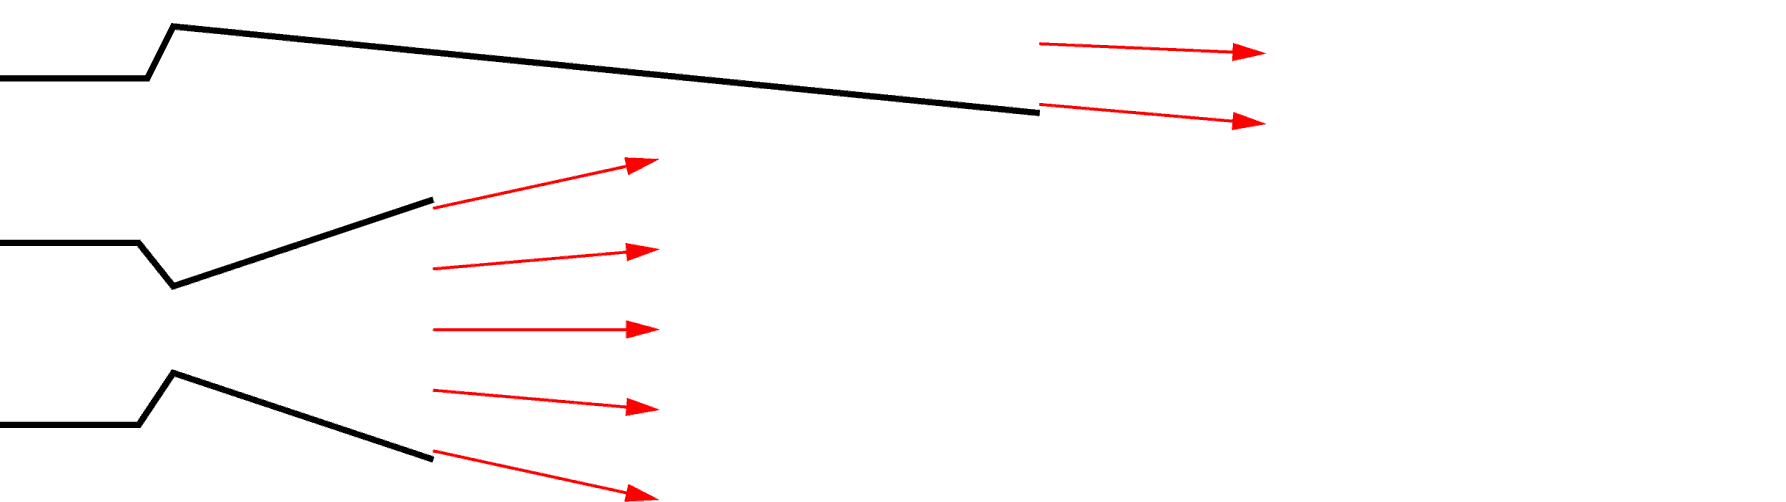 entirely axial (Best is uniform axial flow) α Flow is mostly axial